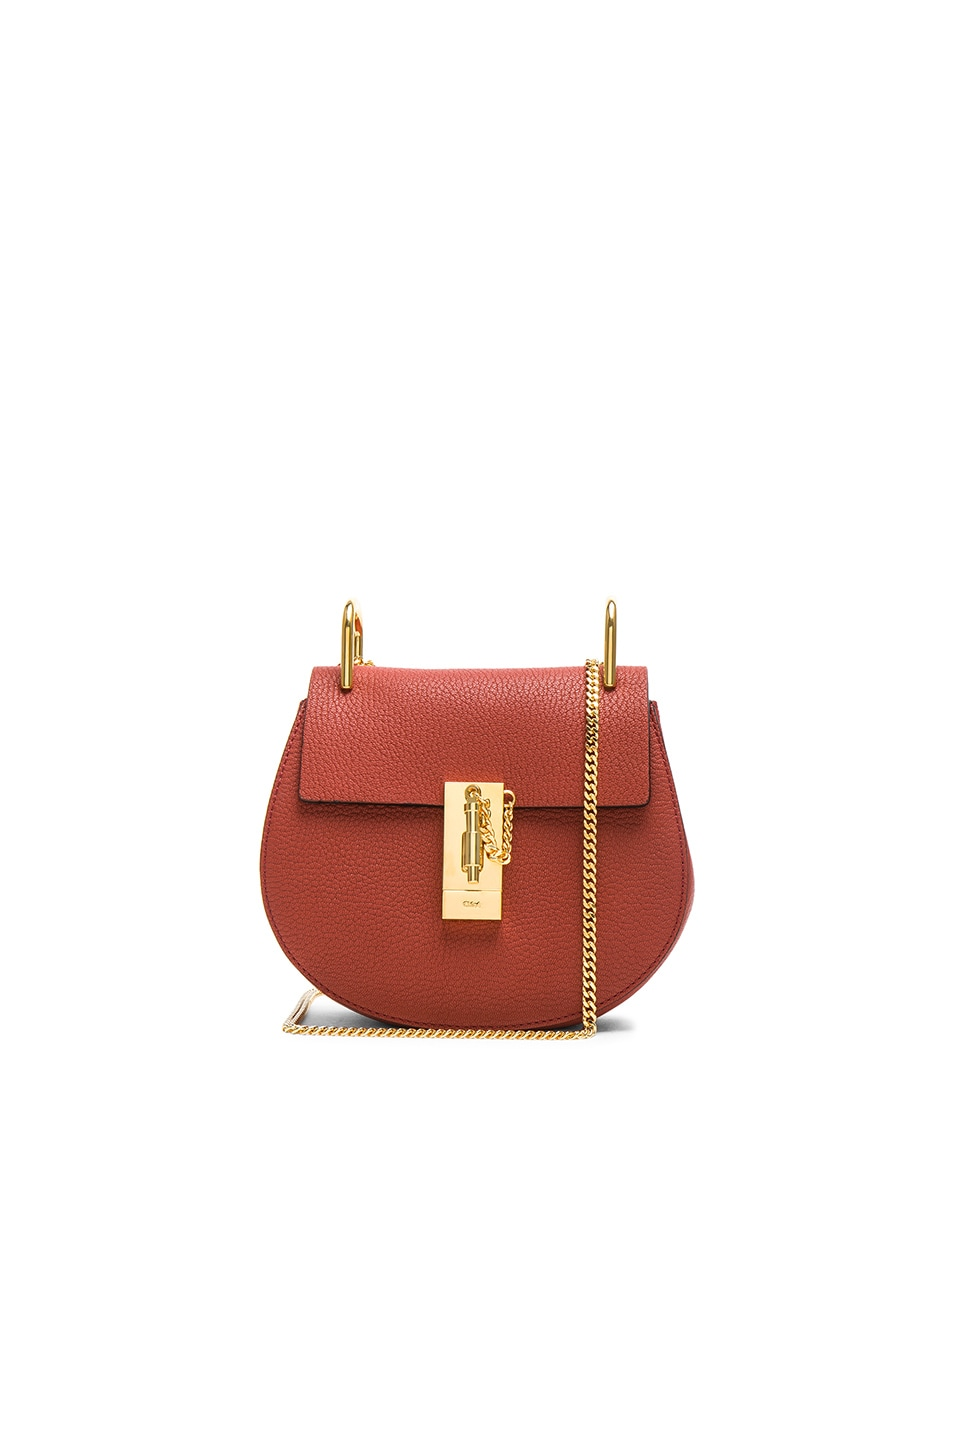 9721fe2e8e Image 1 of Chloe Mini Drew Leather Shoulder Bag in Terracotta Red